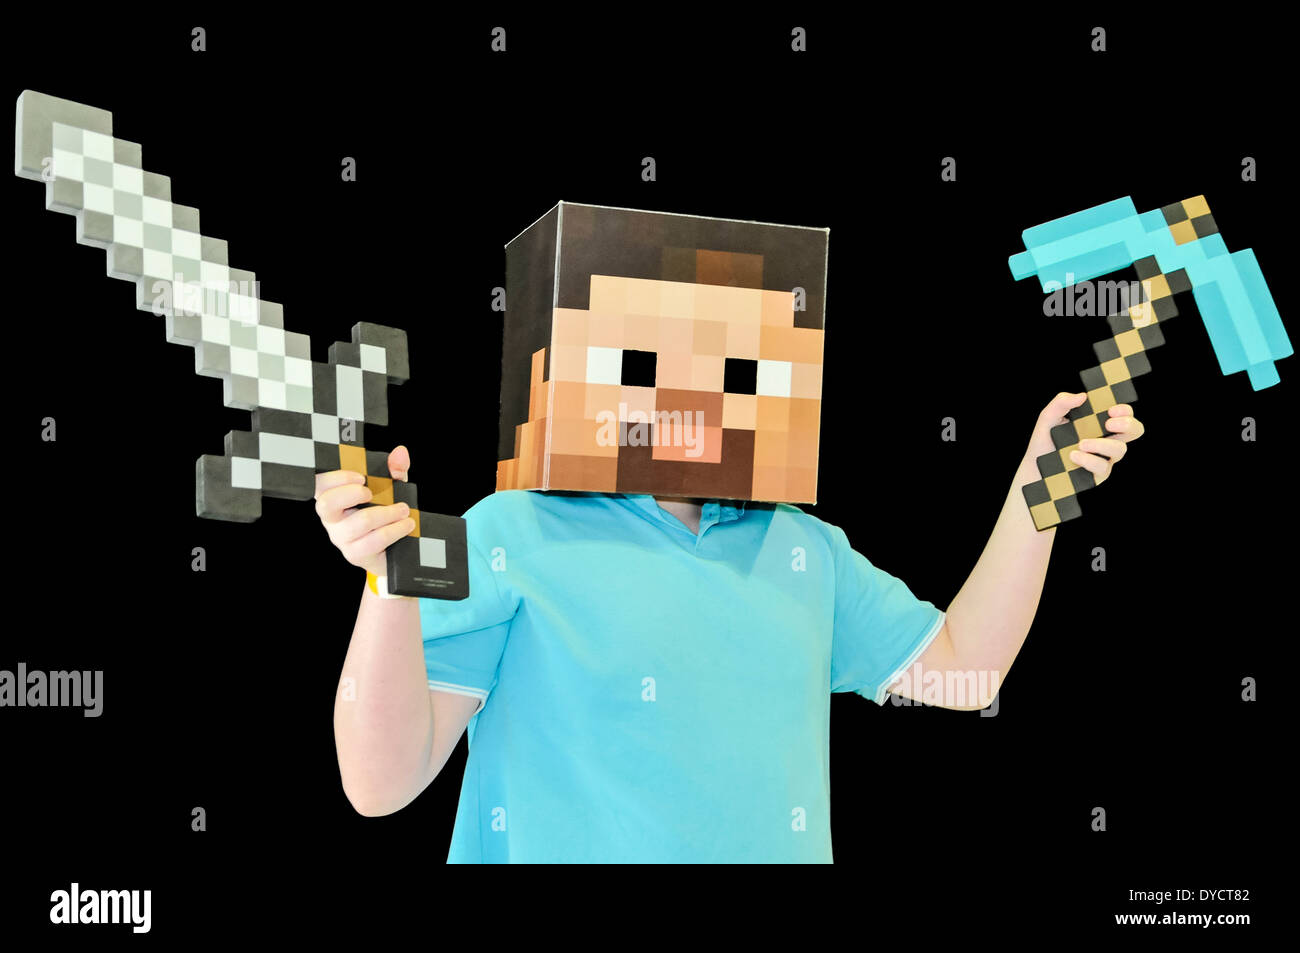 minecraft steve with an